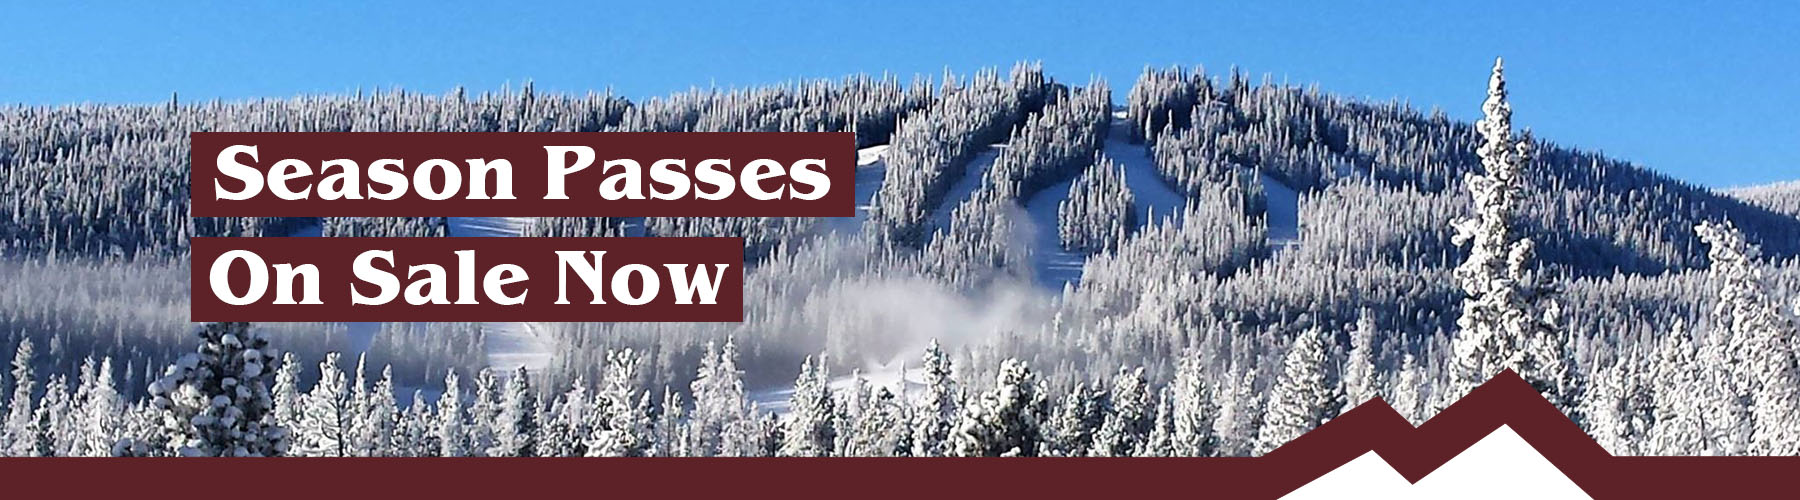 The Snowy Range Ski Area 2018-2019 Season Passes are on sale now